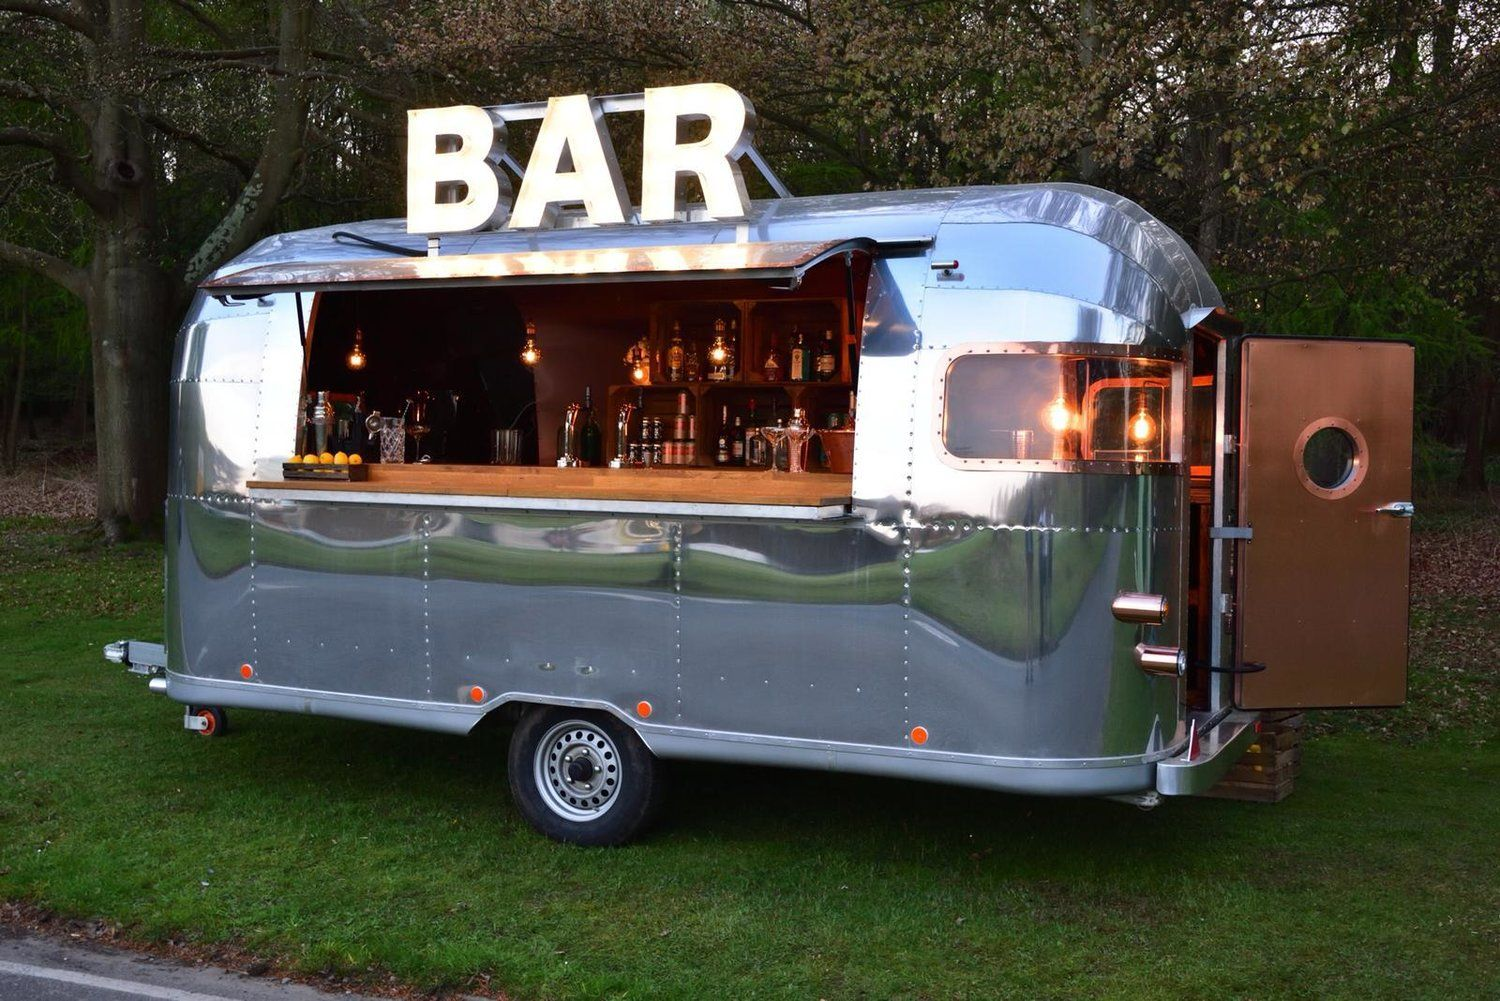 Airstream Bar — Quirky Group in 2020 Bar hire, Mobile